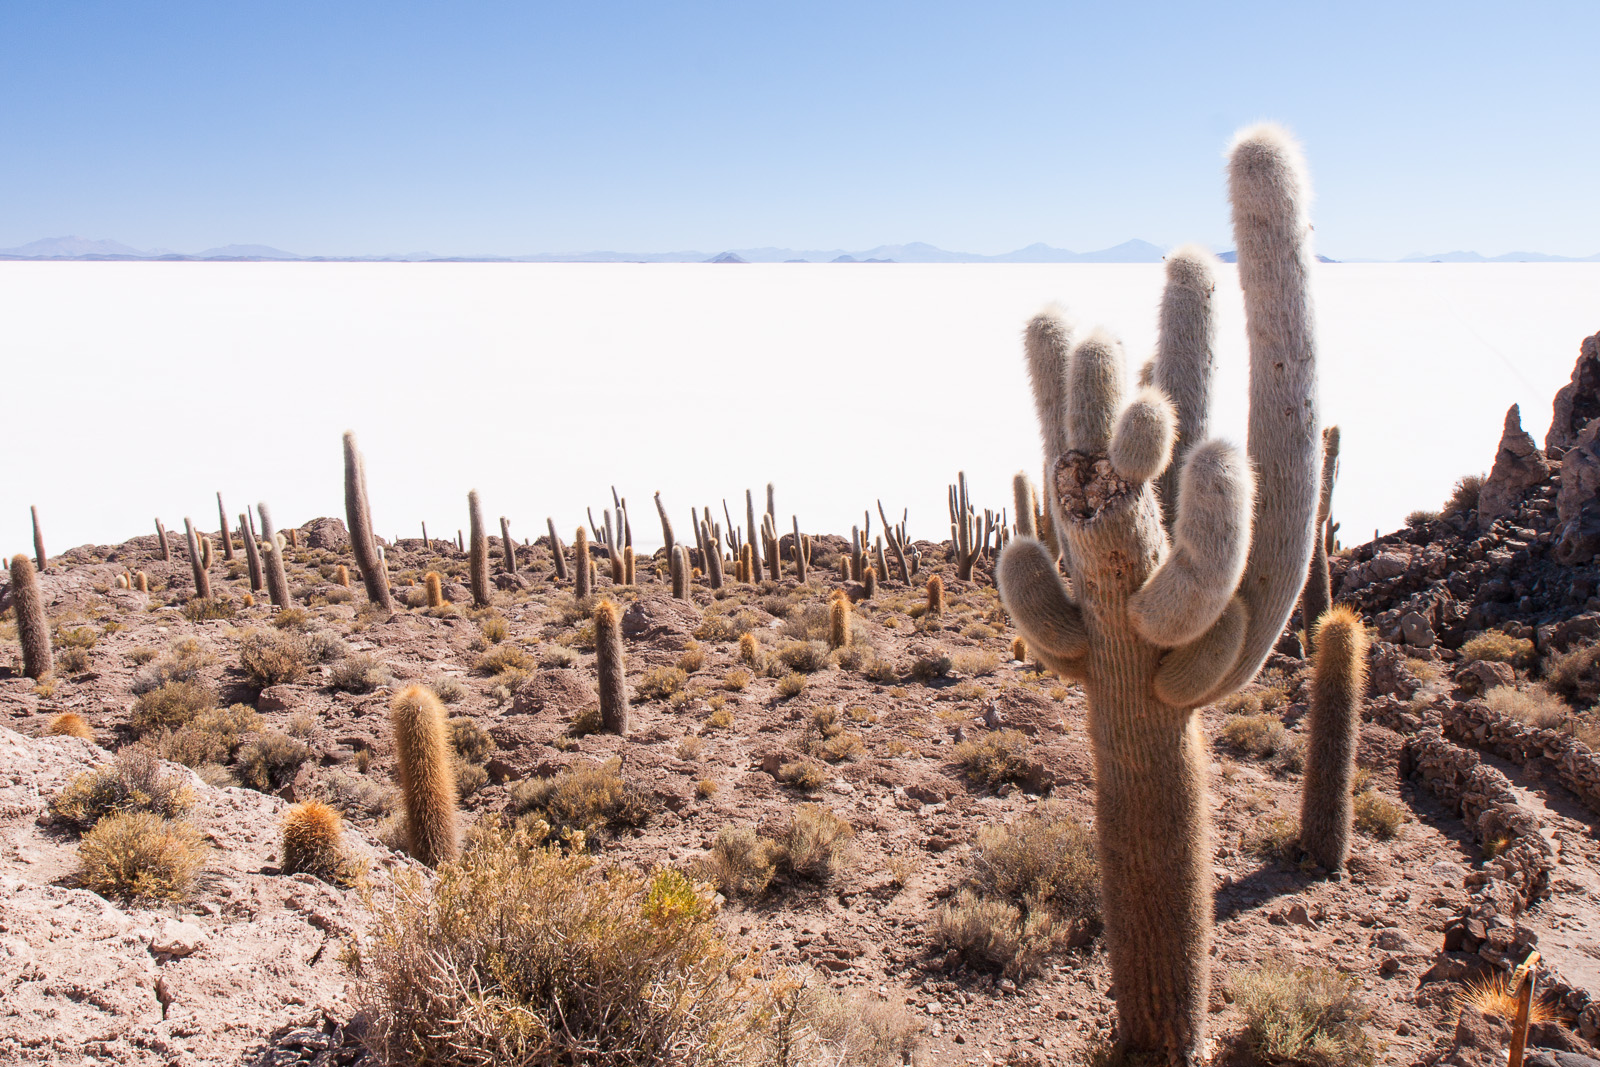 This is Isla Incawasi, a refuge for cacti that, despite the high salt content and lack of water continue to grow at a rate of 2.5 cm per year.